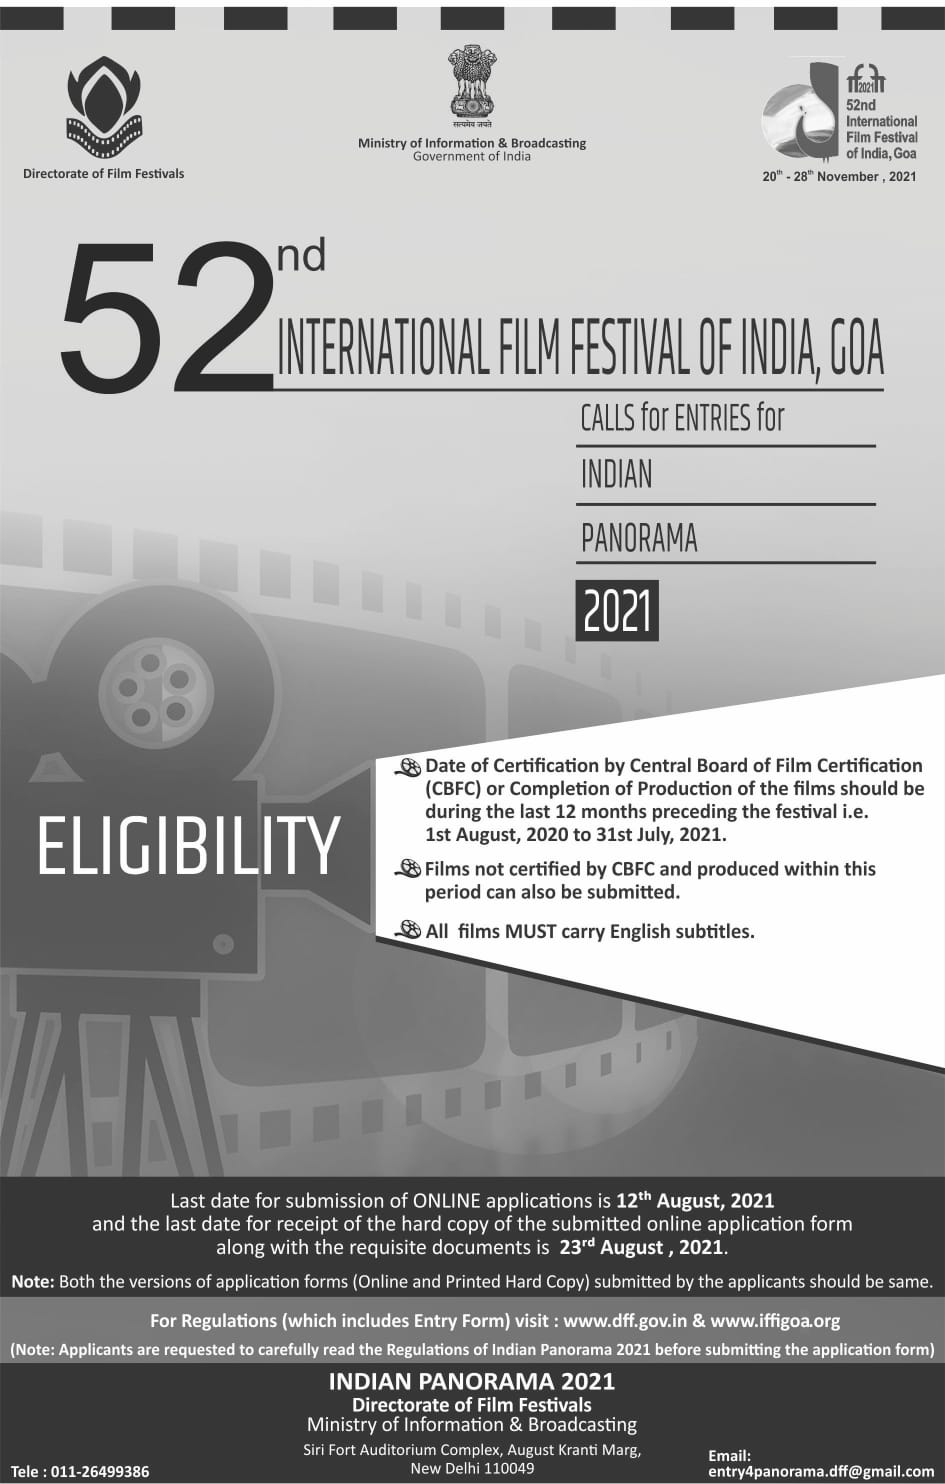 indian-panorama-calls-for-entries-for-52nd-edition-of-iffi